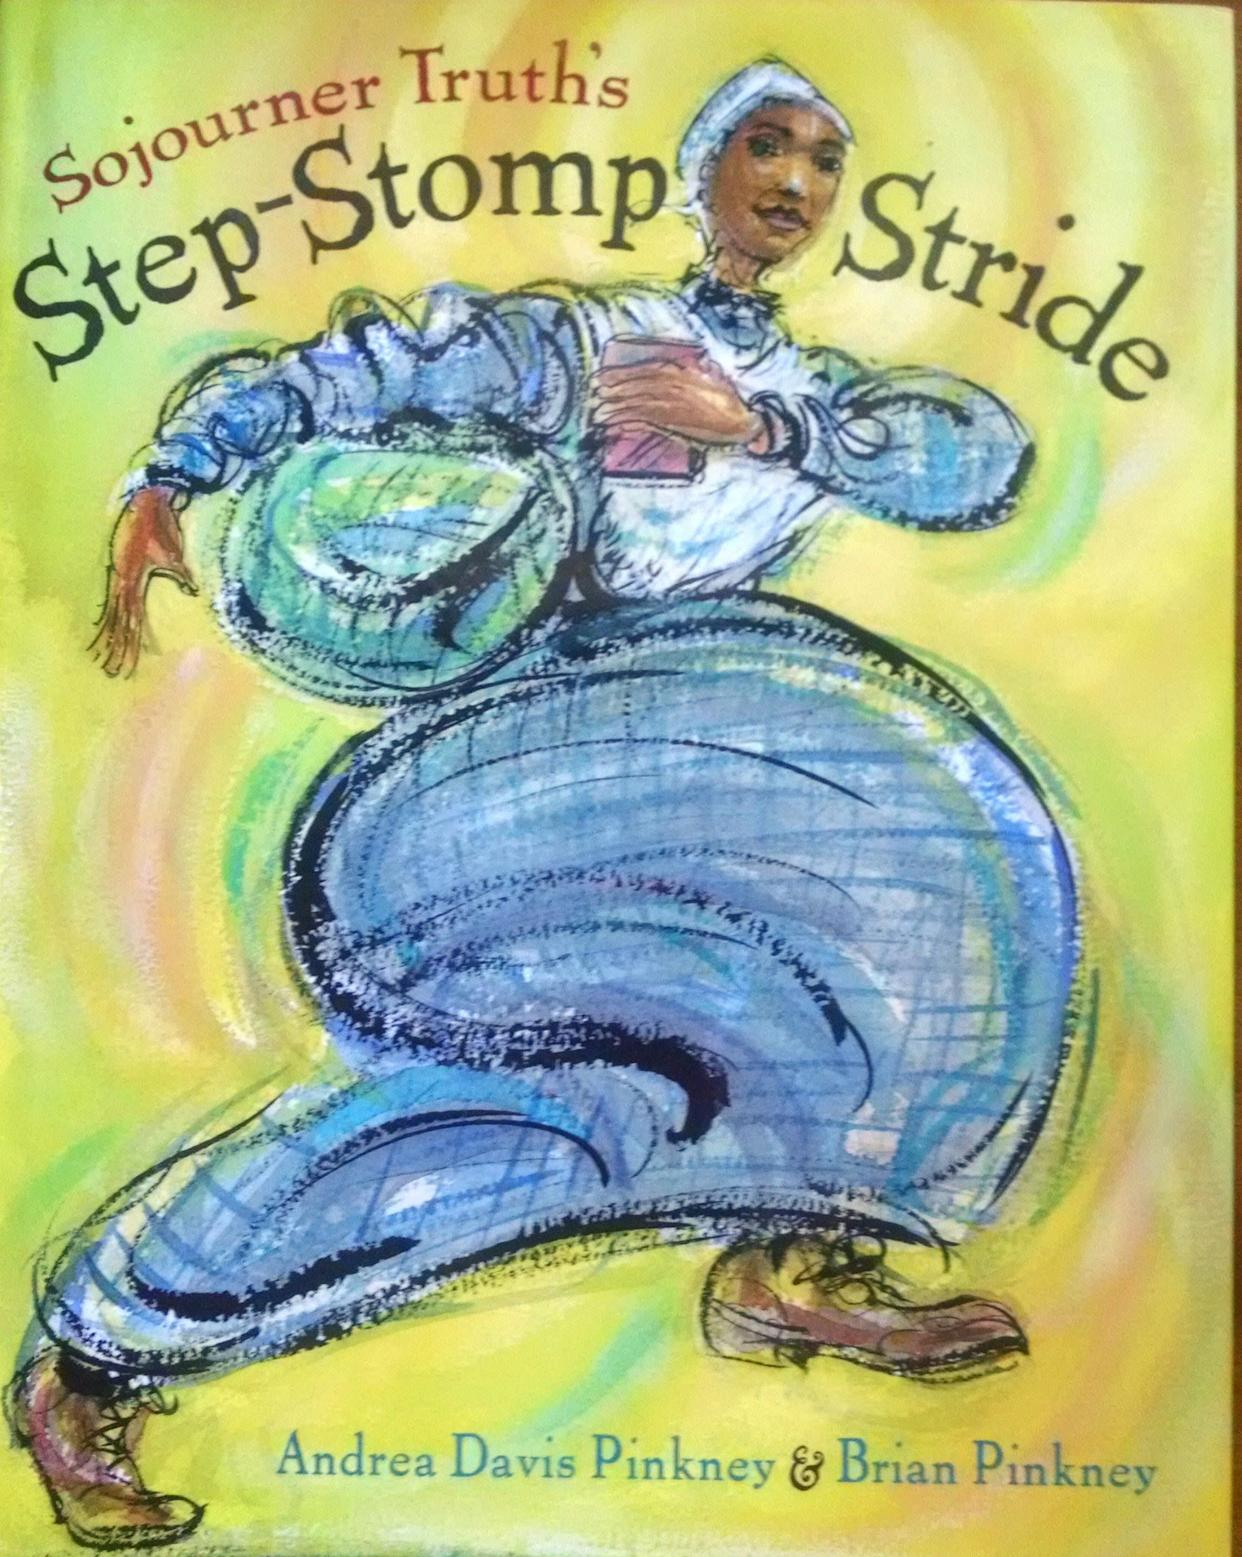 Sojourner Truth, like Harriet Tubman, is a great historical figure for kids to start reading about early on. This vibrant picture book by Andrea Davis Pinkney and Brian Pinkney celebrates the strength and resourcefulness of Truth in playful, engaging language.